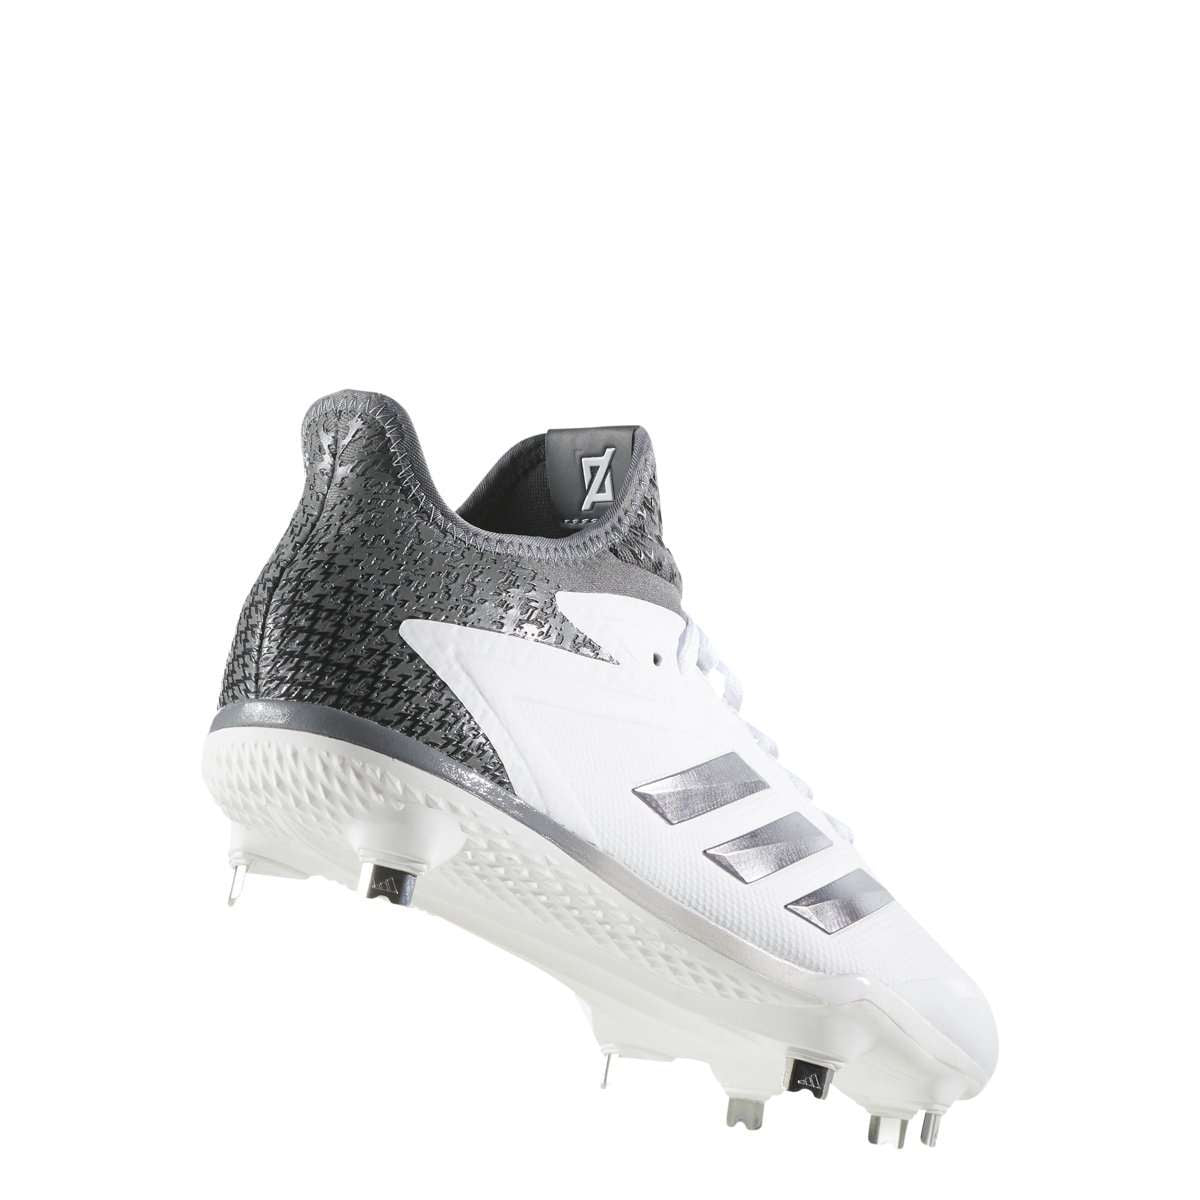 8a589c03eb19 ... adidas adizero Afterburner 4 Men s Metal Baseball Cleats - League  Outfitters ...